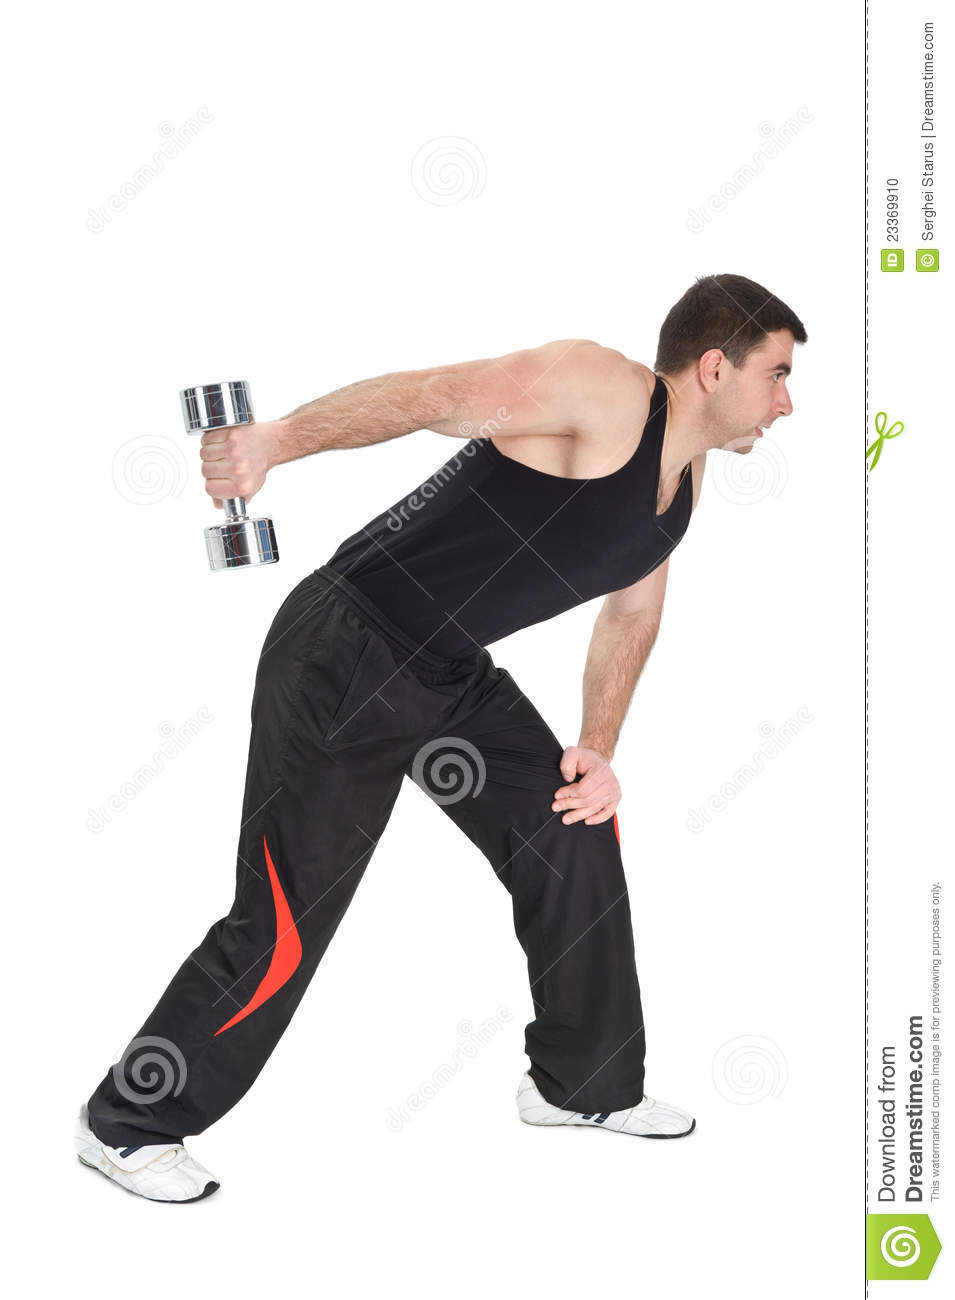 Standing Dumbbell One Arm Triceps Extensions Stock Photo ...